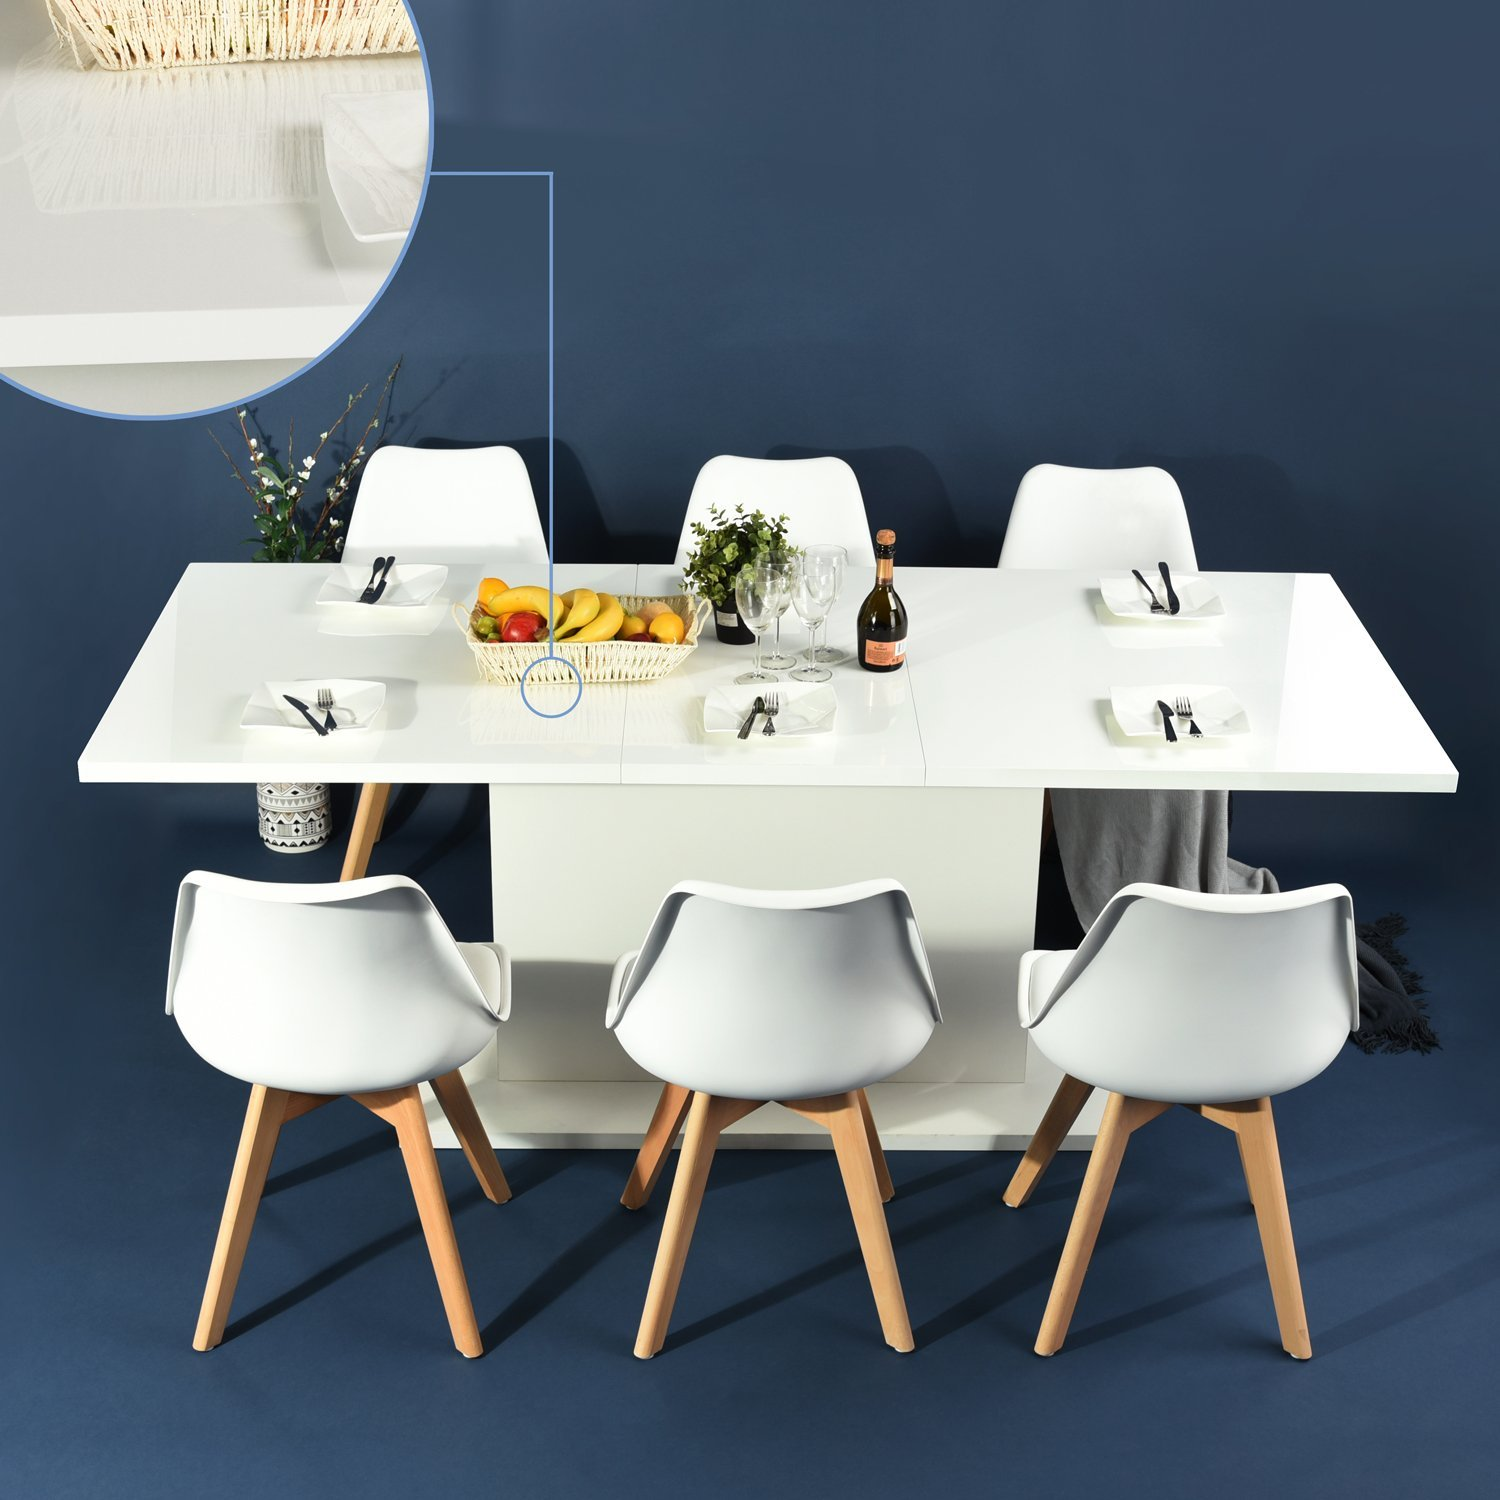 HOMY CASA High Gloss White Extendable Rectangular Dining Table, Mltifunction Space Saving Wood Table (High Gloss White Top)